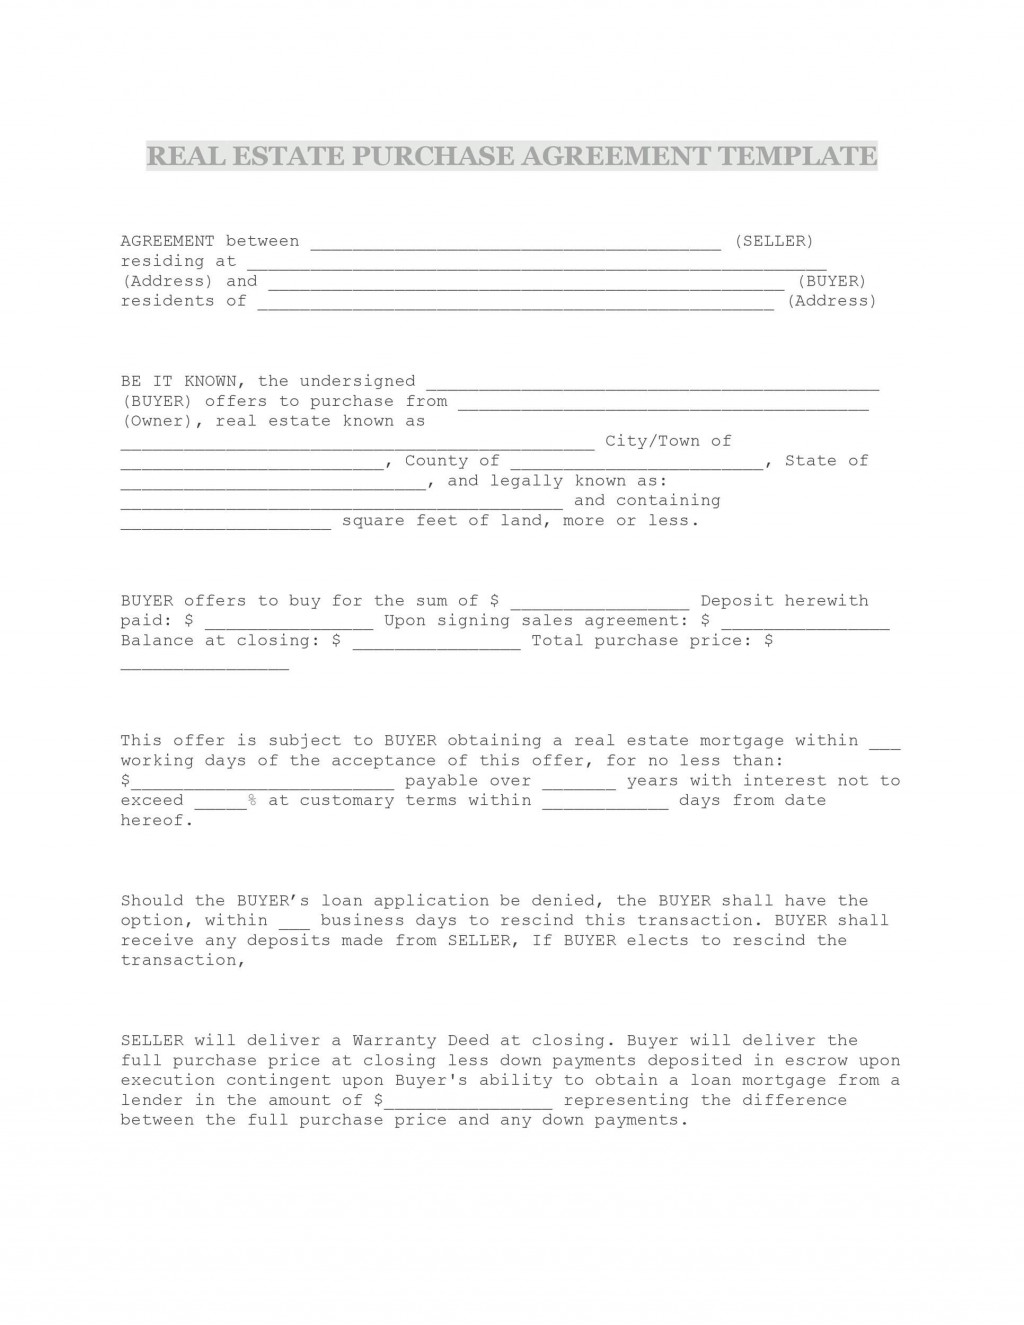 007 Rare Simple Real Estate Buy Sell Agreement Template High Resolution  Free Purchase Form OhioLarge